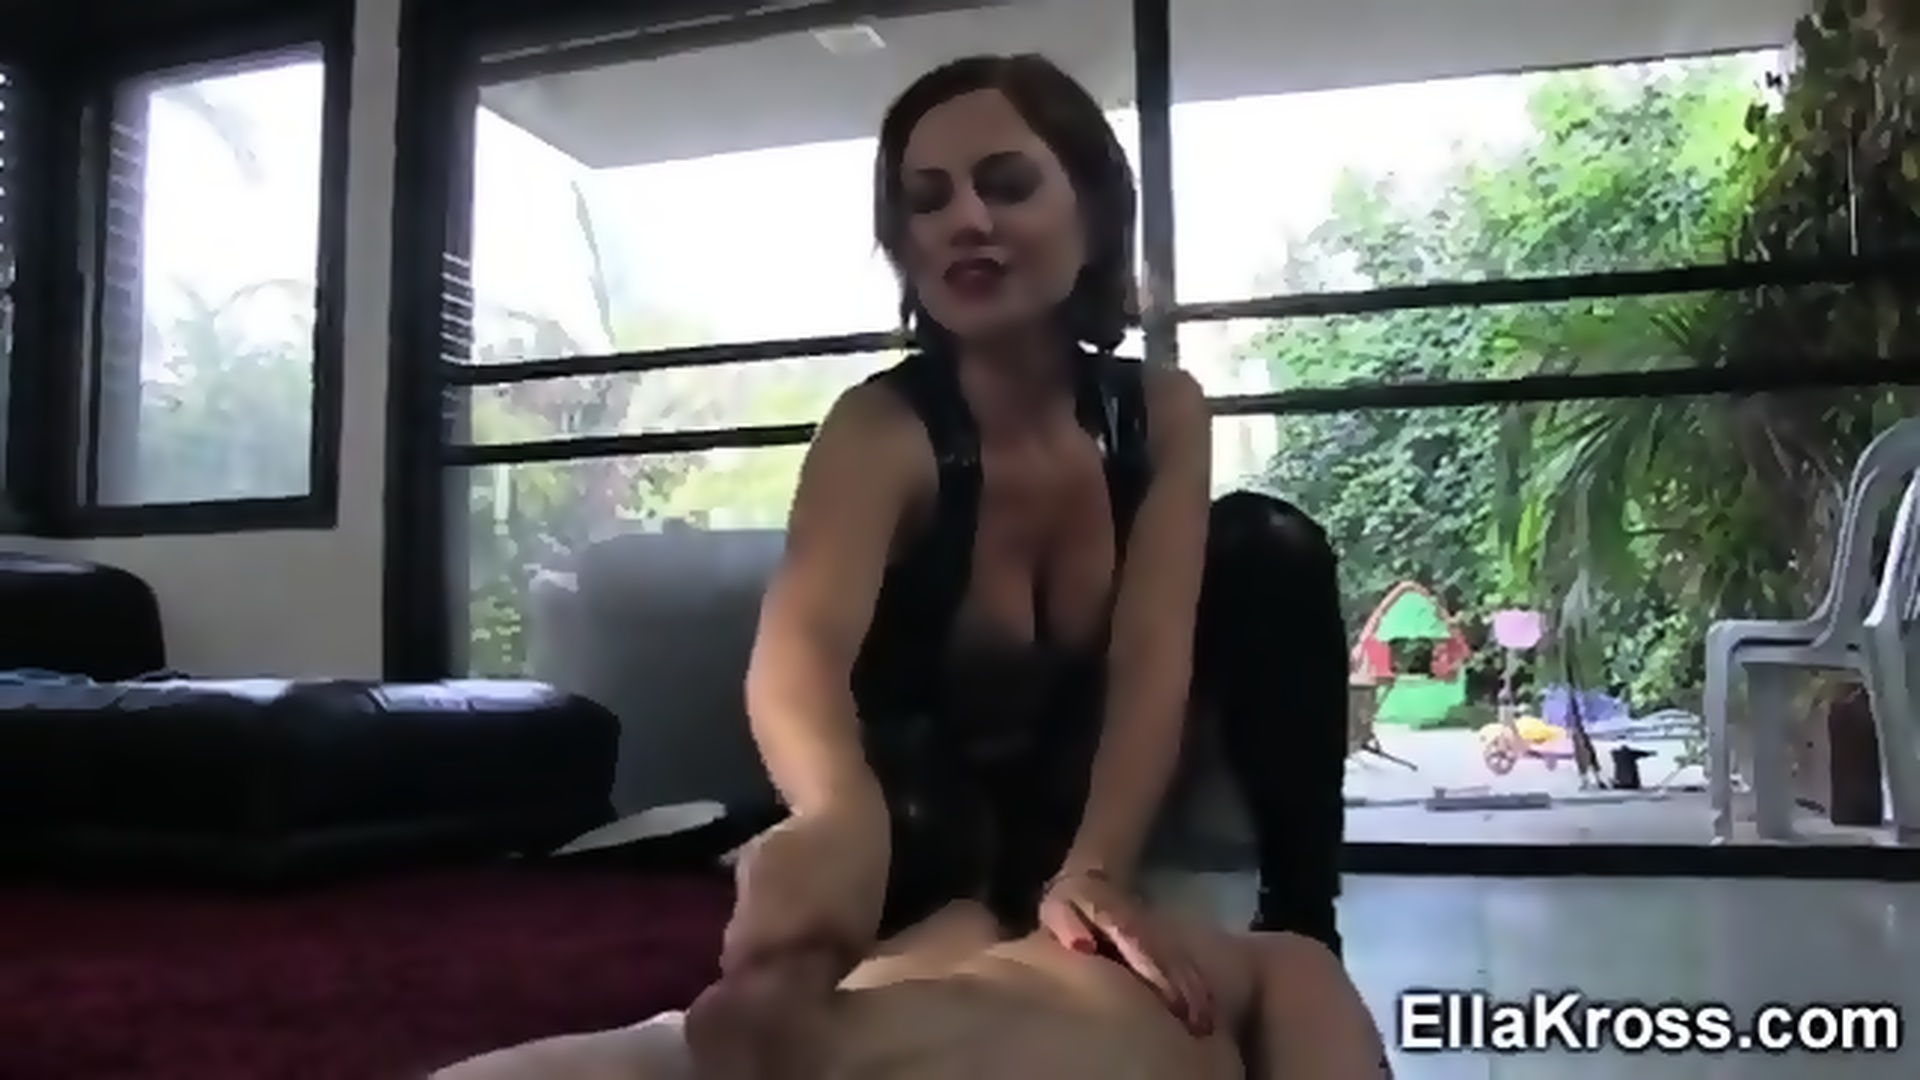 thank for very bigtit deepthroat cumshot sorry, that has